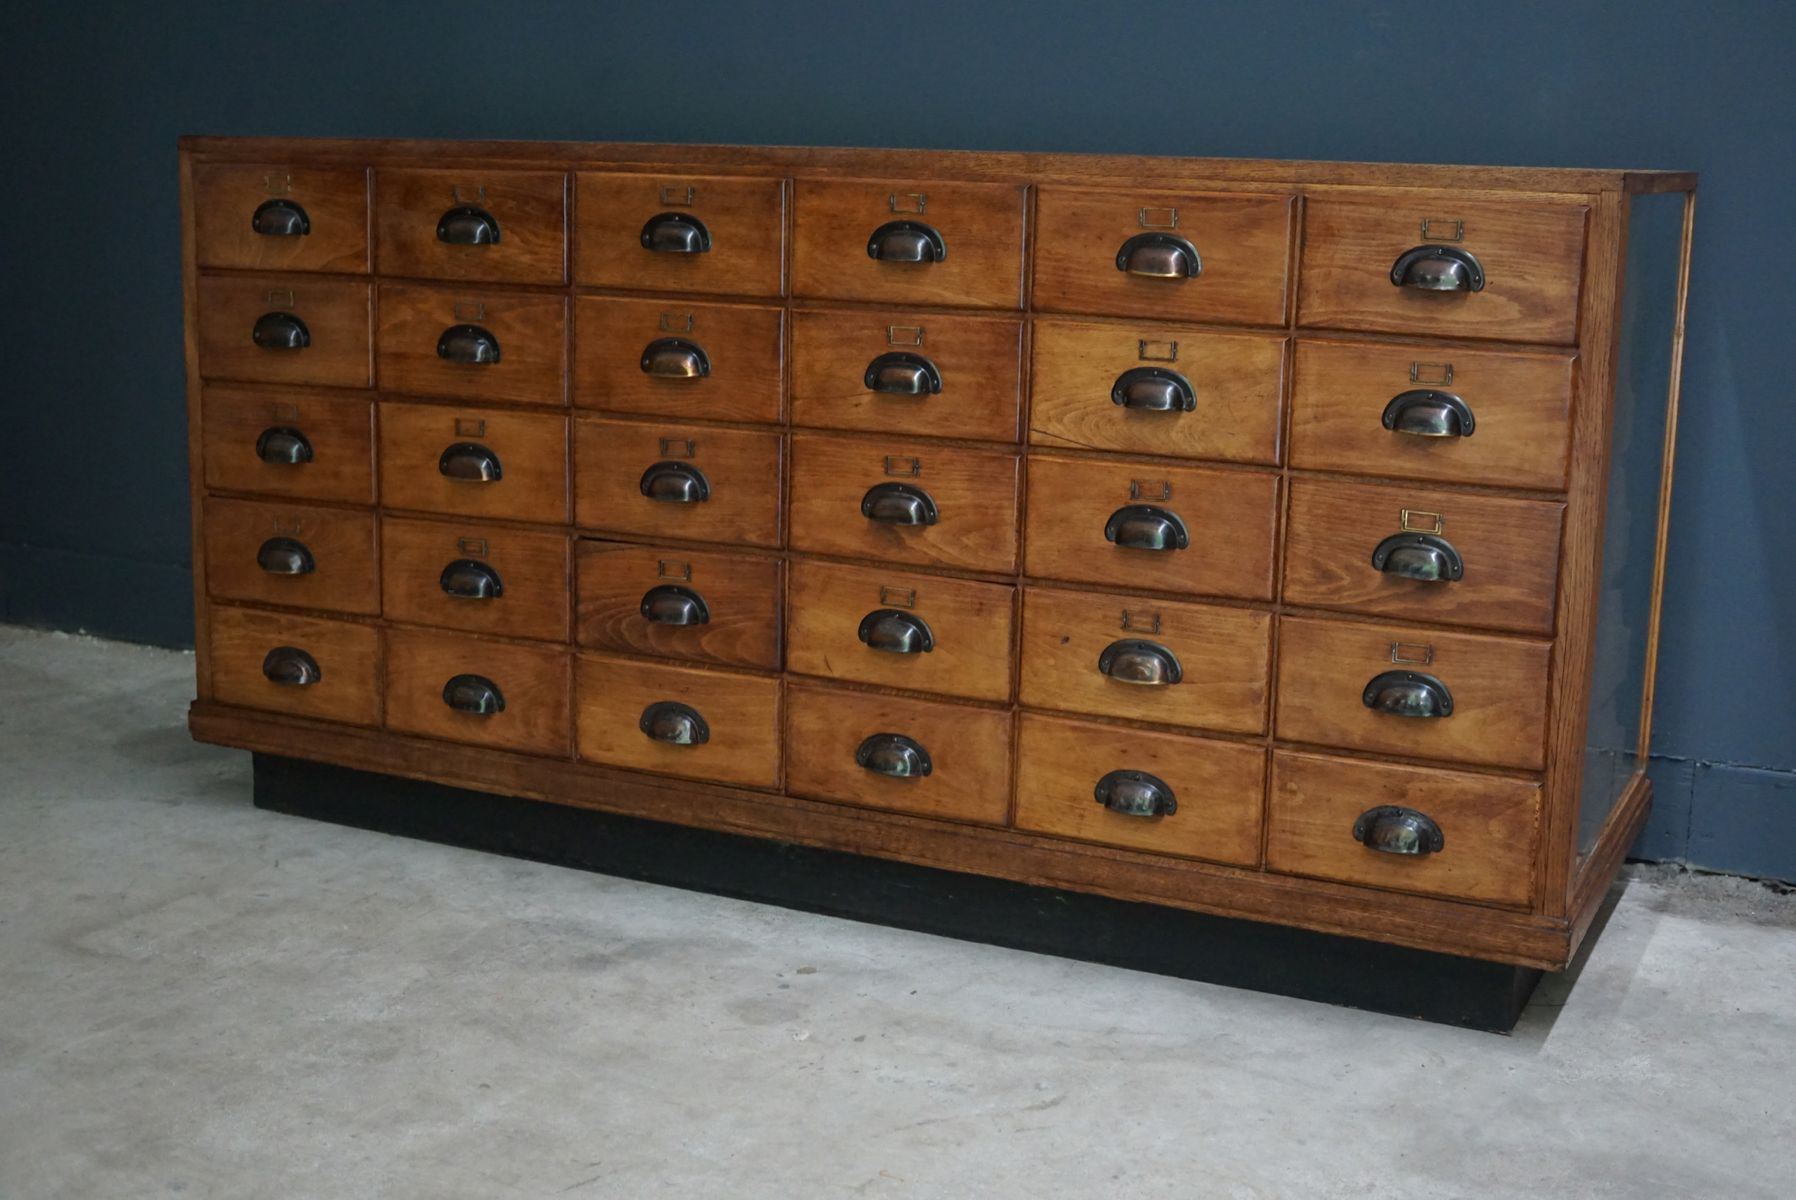 British Oak Haberdashery Cabinet or Shop Counter, 1930s for sale ...